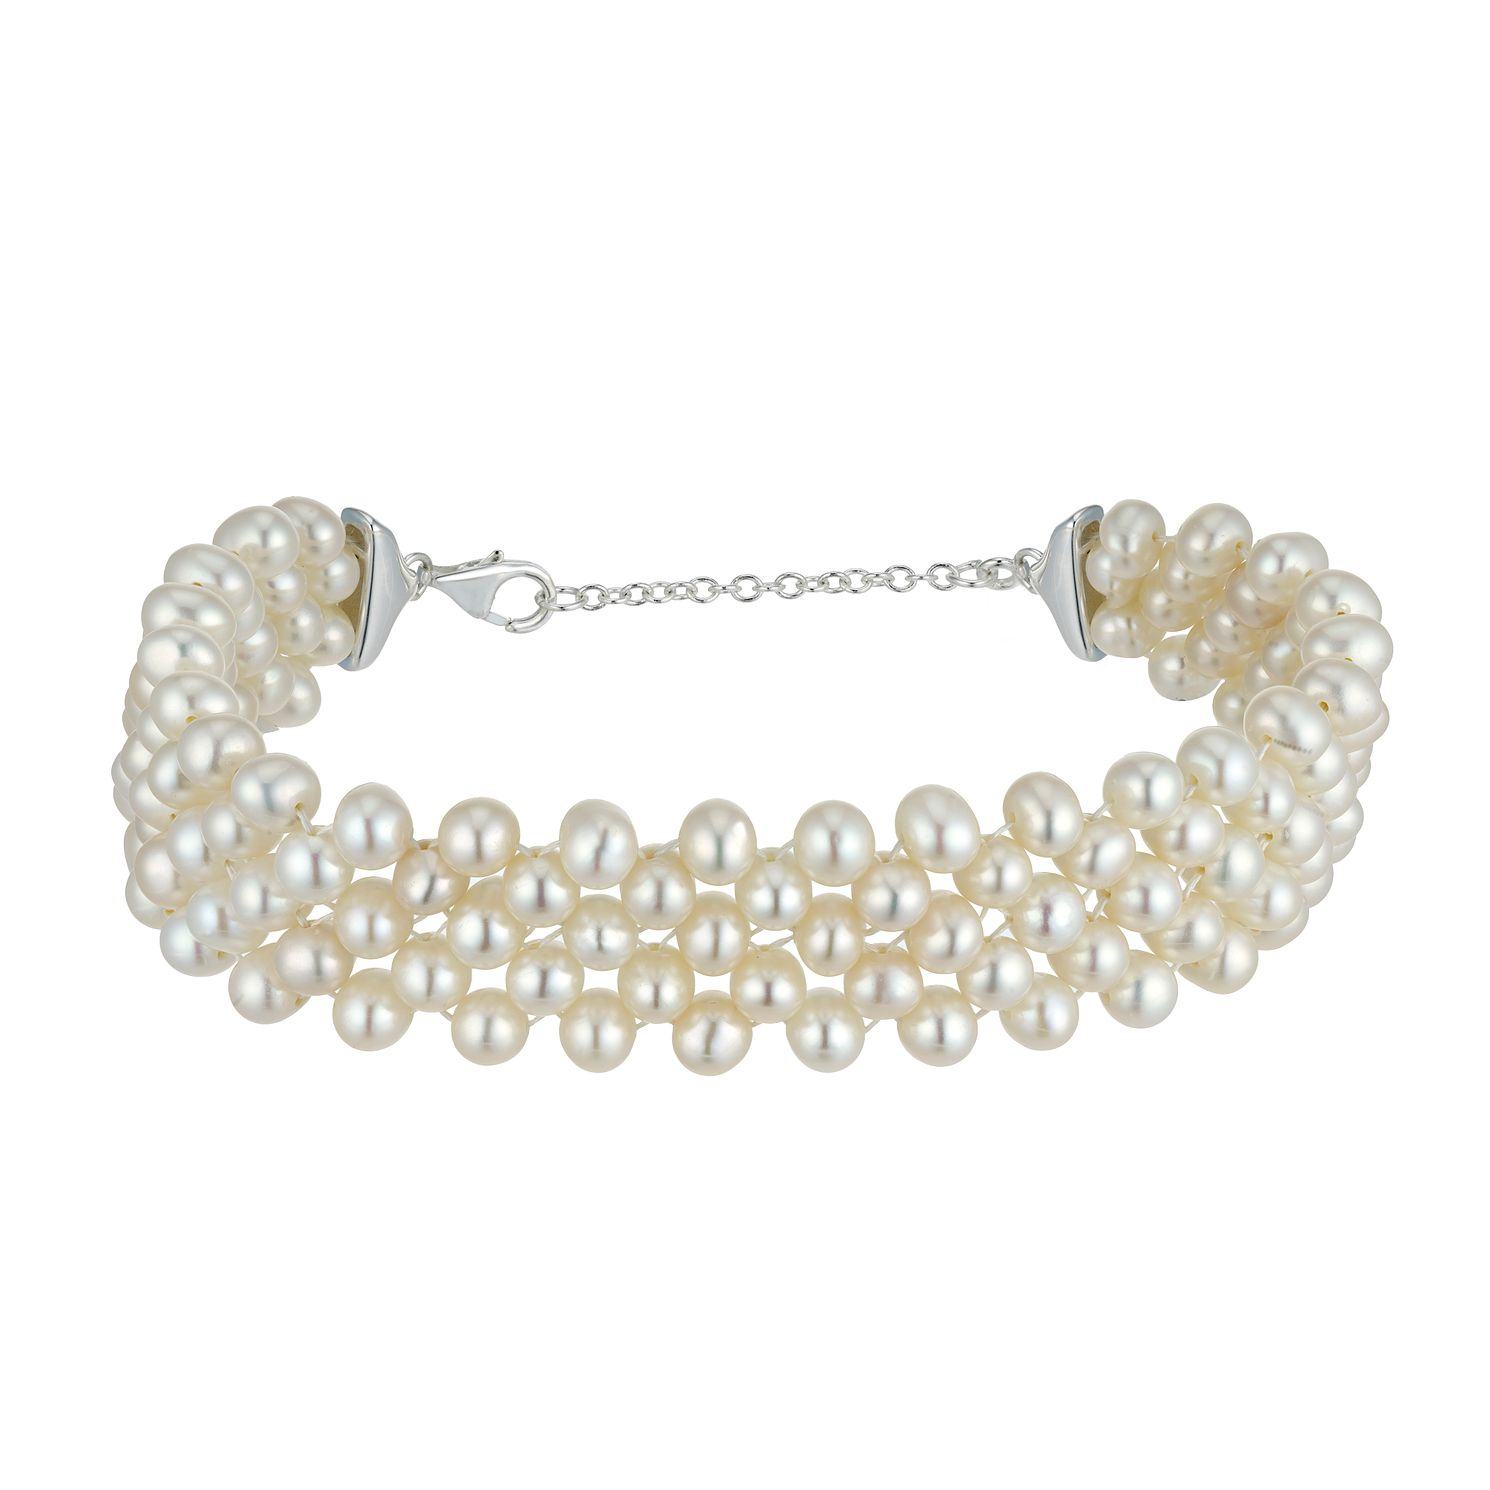 Silver Cultured Freshwater Pearl 5 Row Bracelet - Product number 4863178